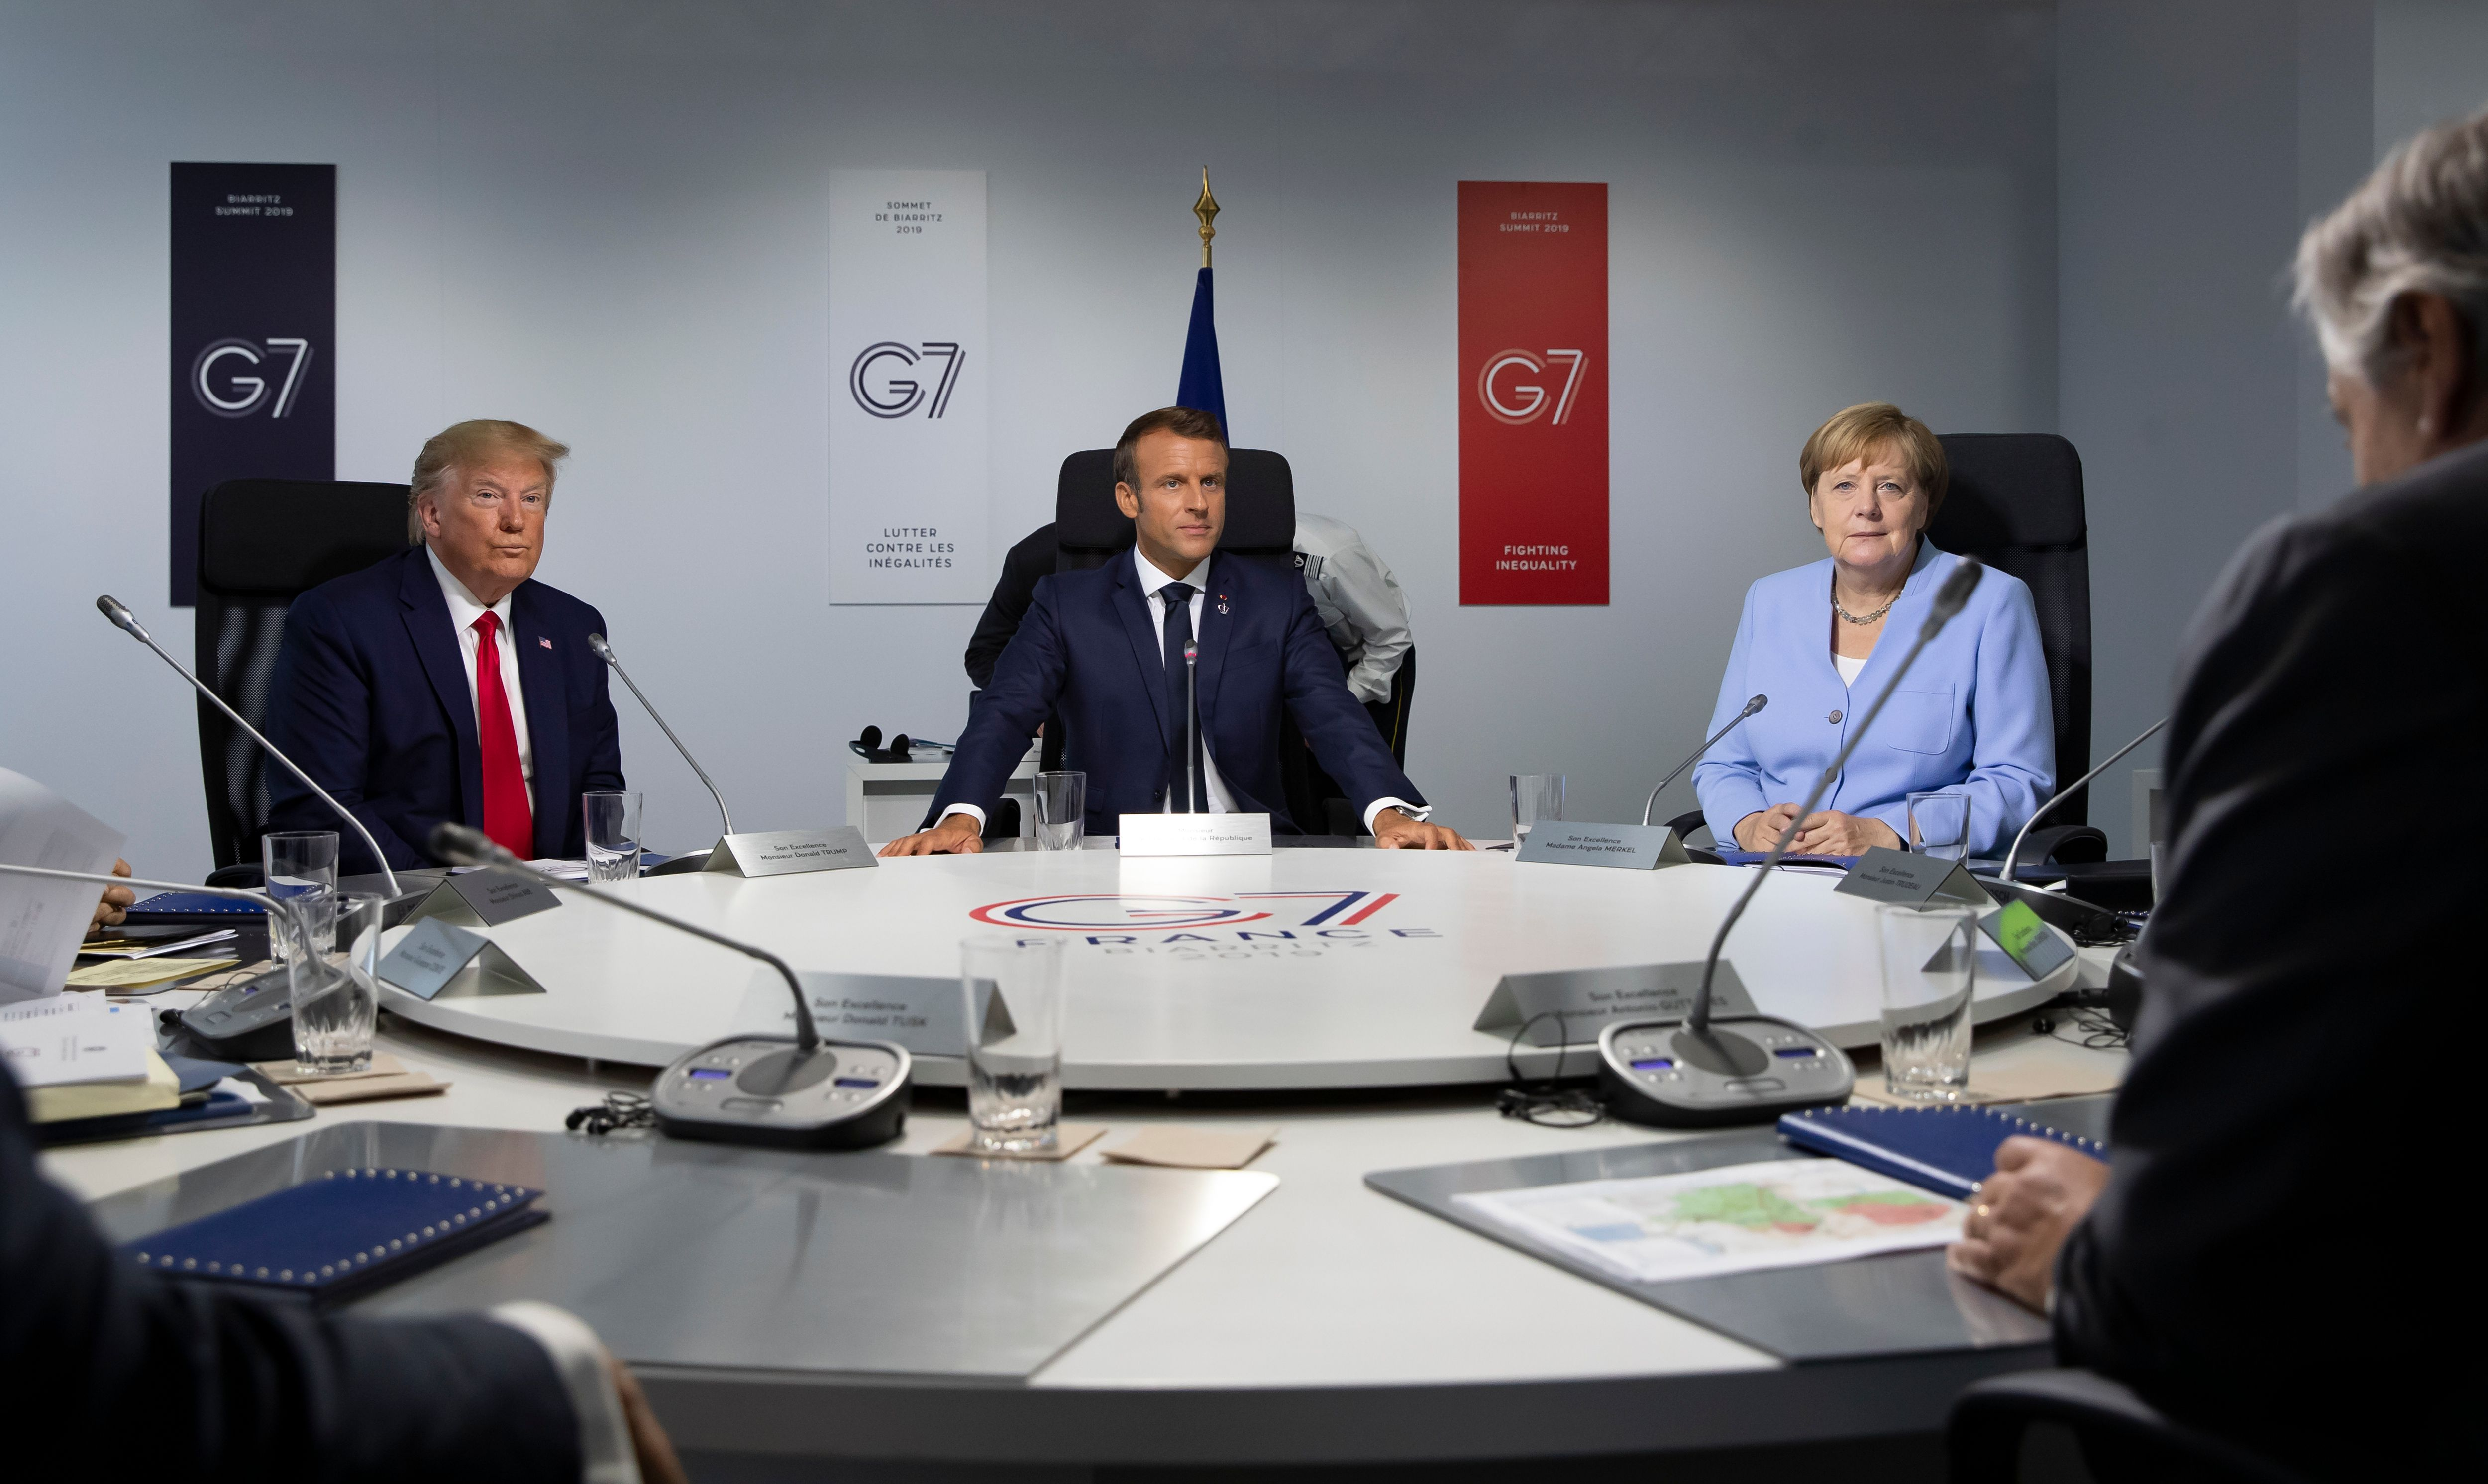 President Trump, French President Emmanuel Macron and Germany's Chancellor Angela Merkel attend a work session at the G7 Summit.